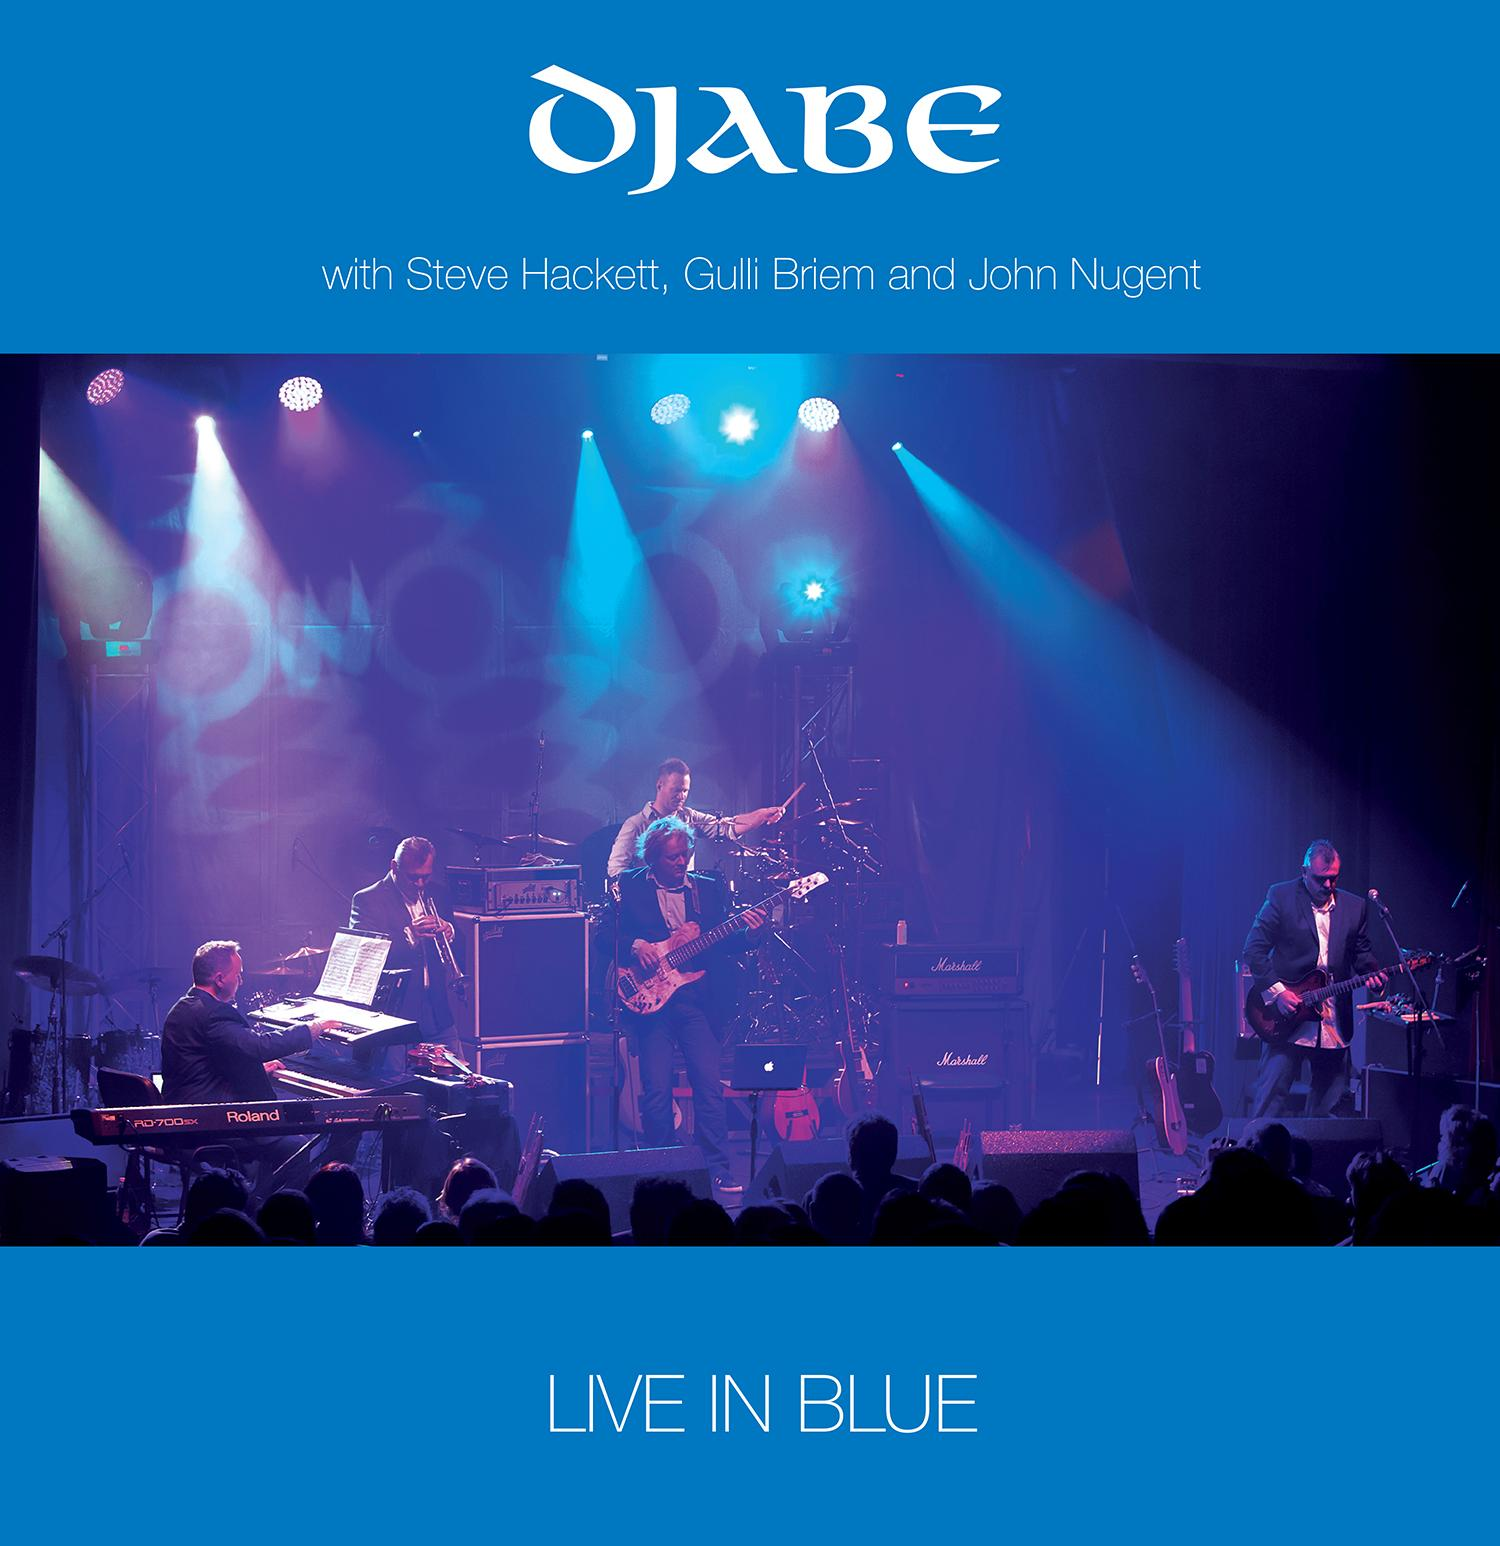 LIVE IN BLUE - DJABE - DVD -